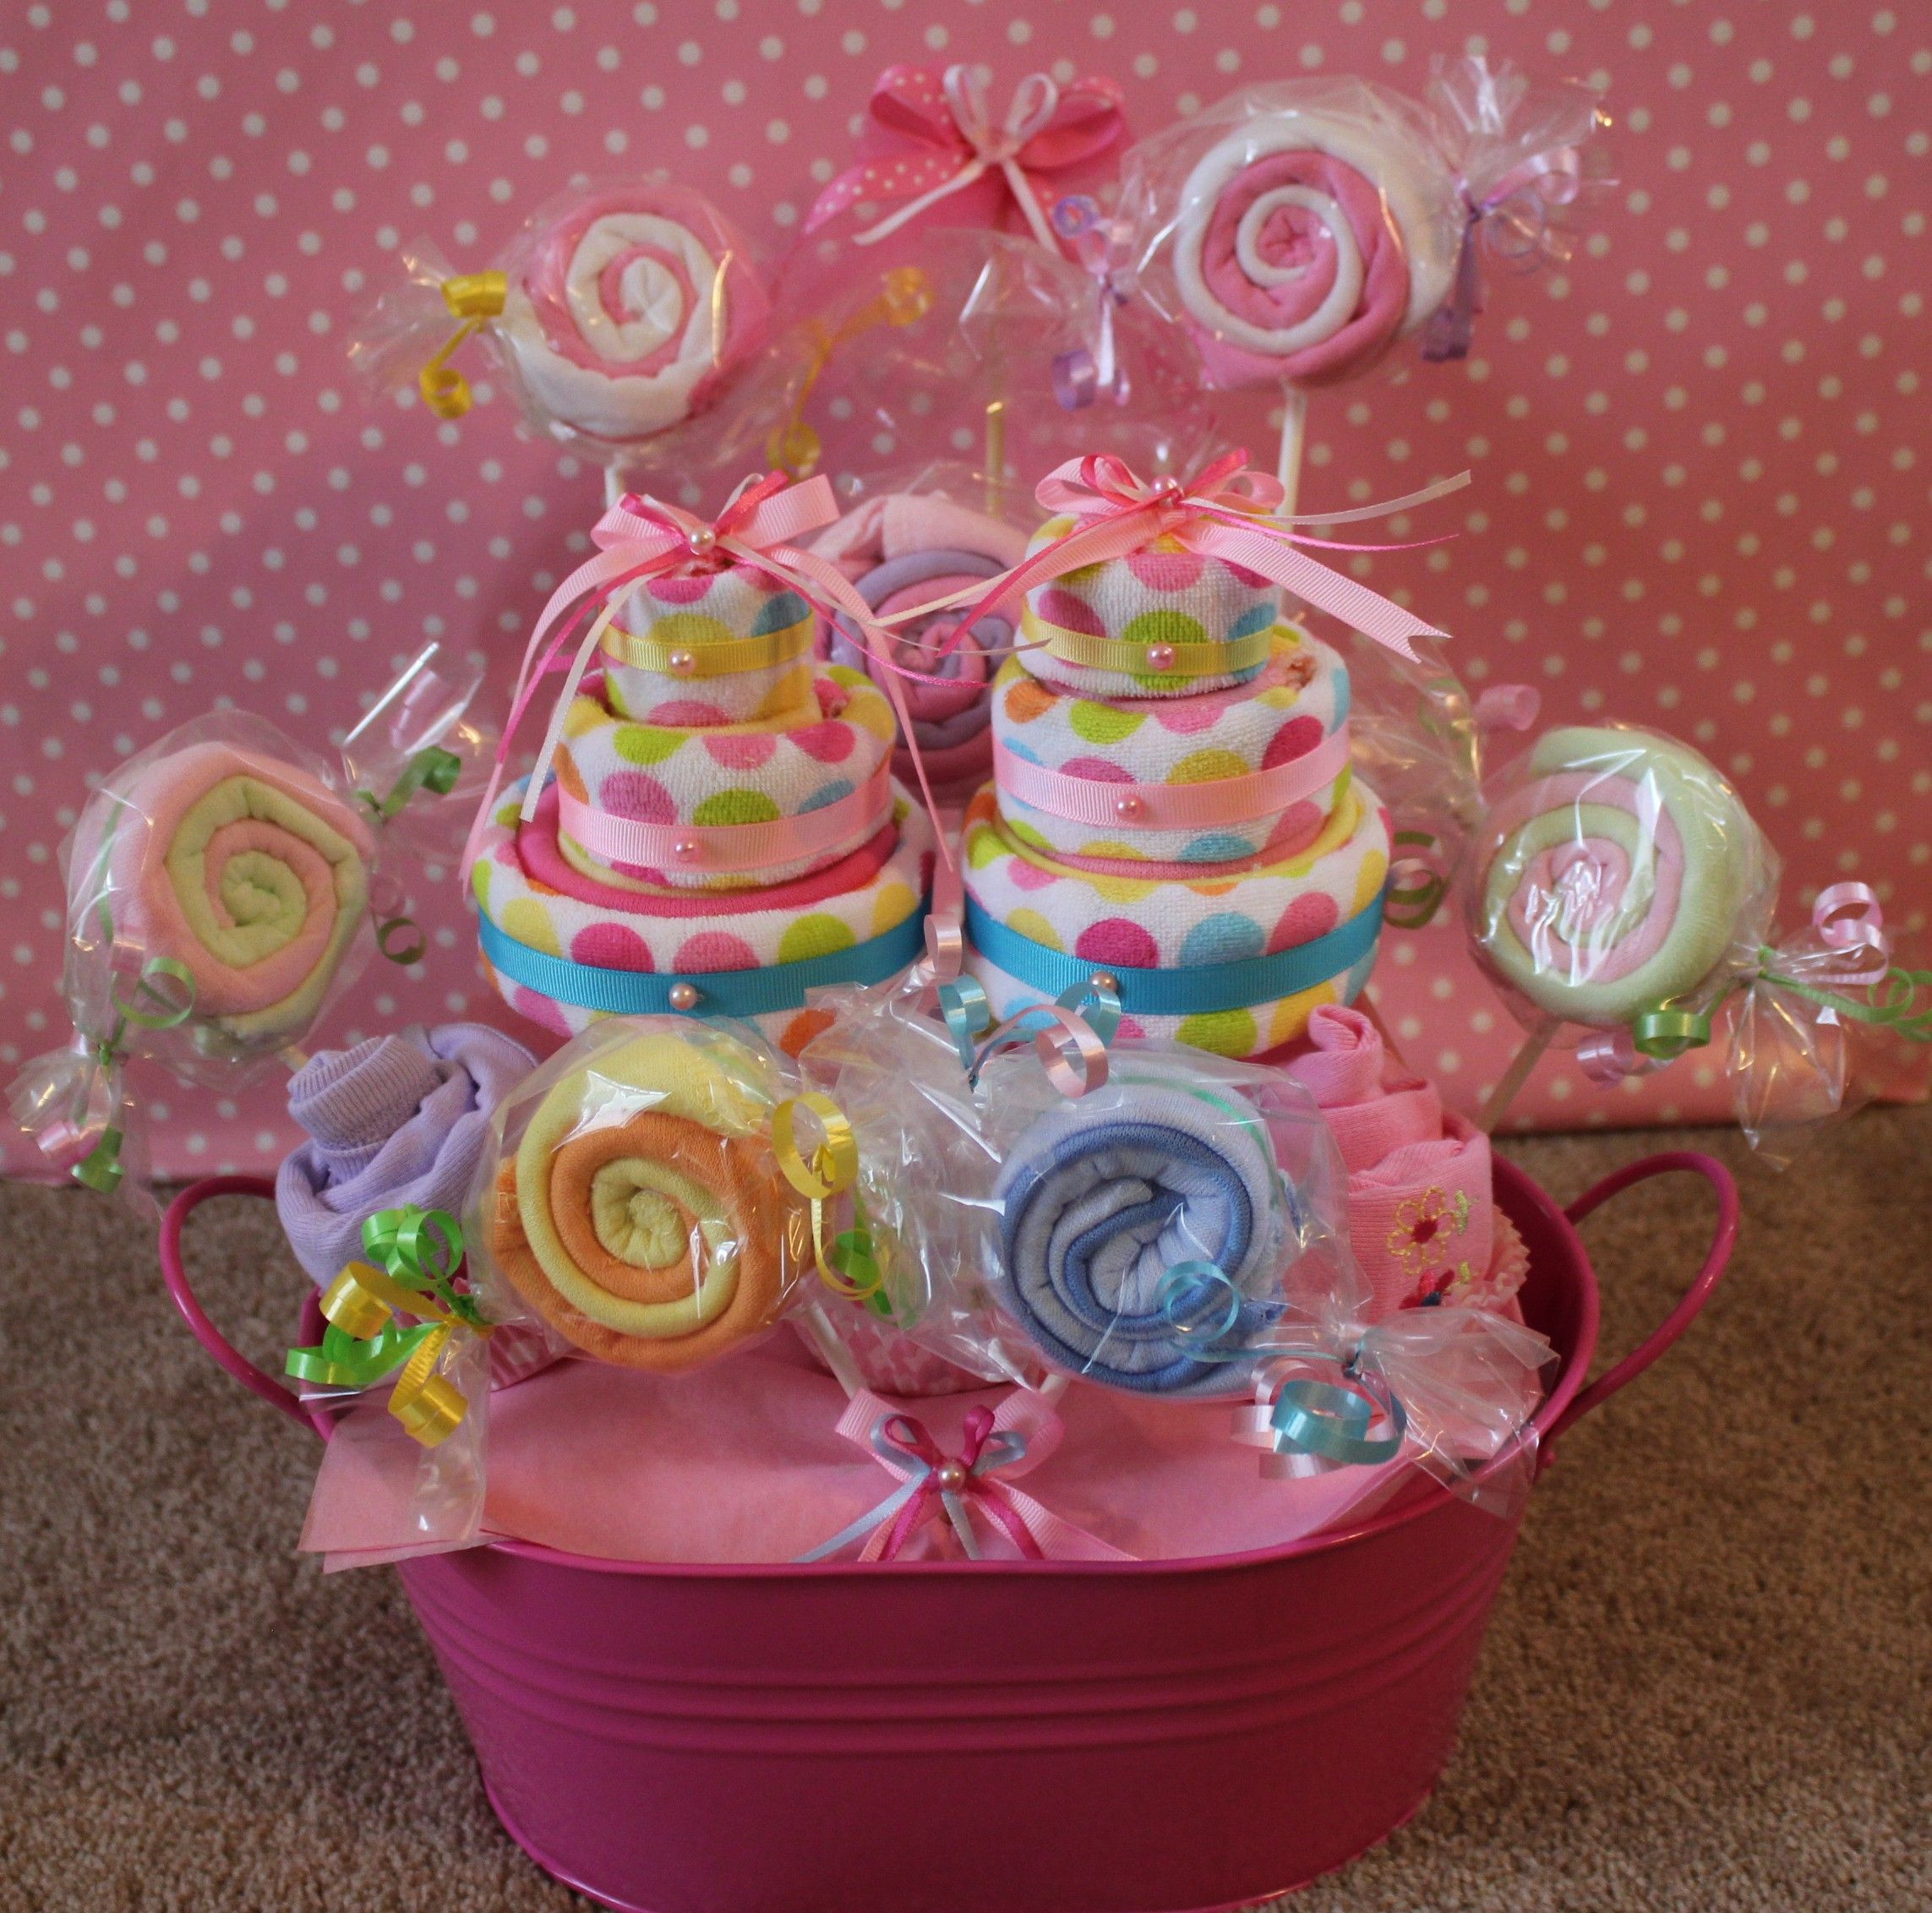 Gift Ideas For New Baby Girl  Wash cloth centerpiece